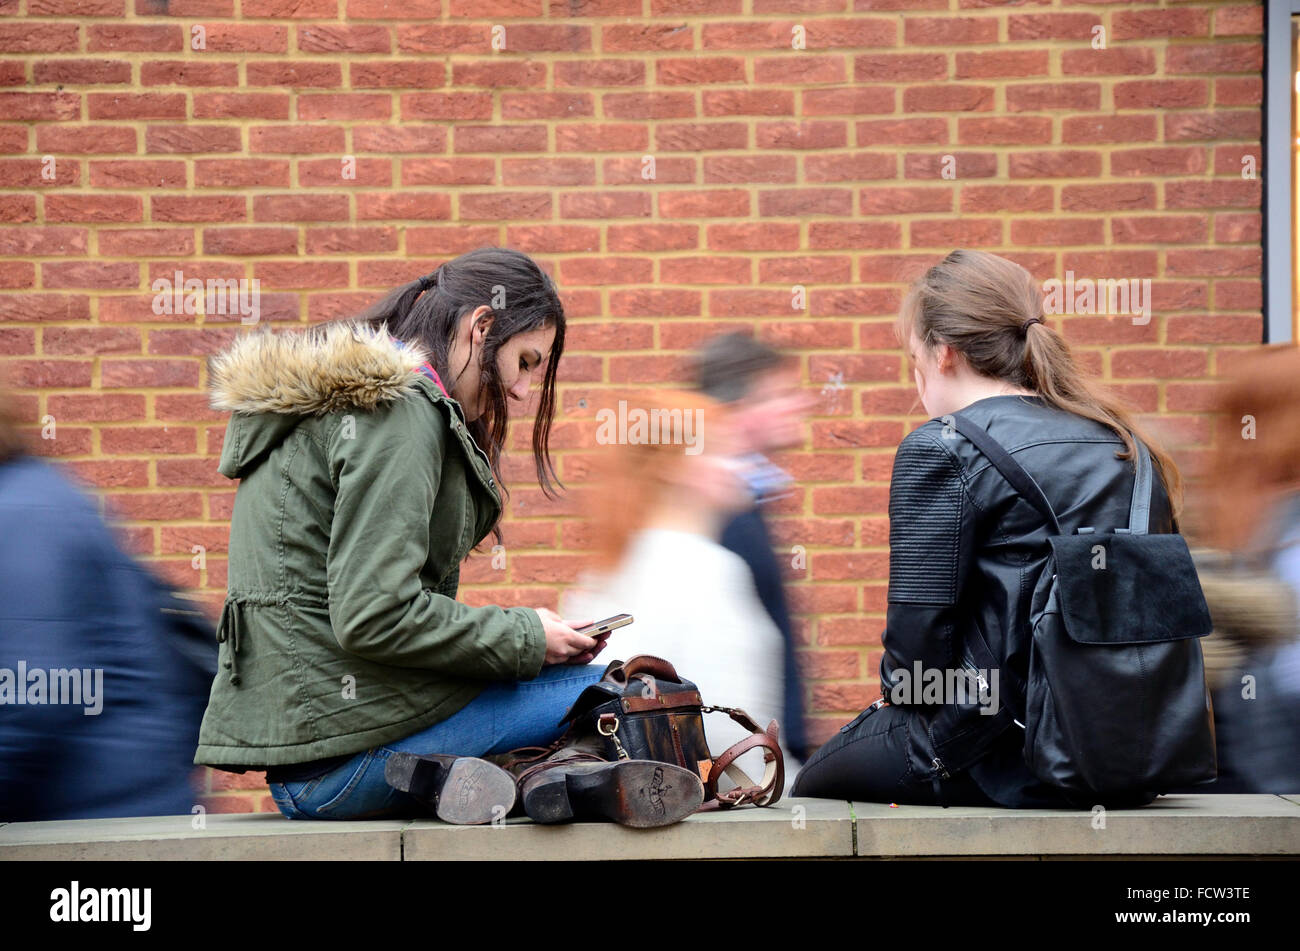 two-teenage-girls-sat-on-a-wall-together